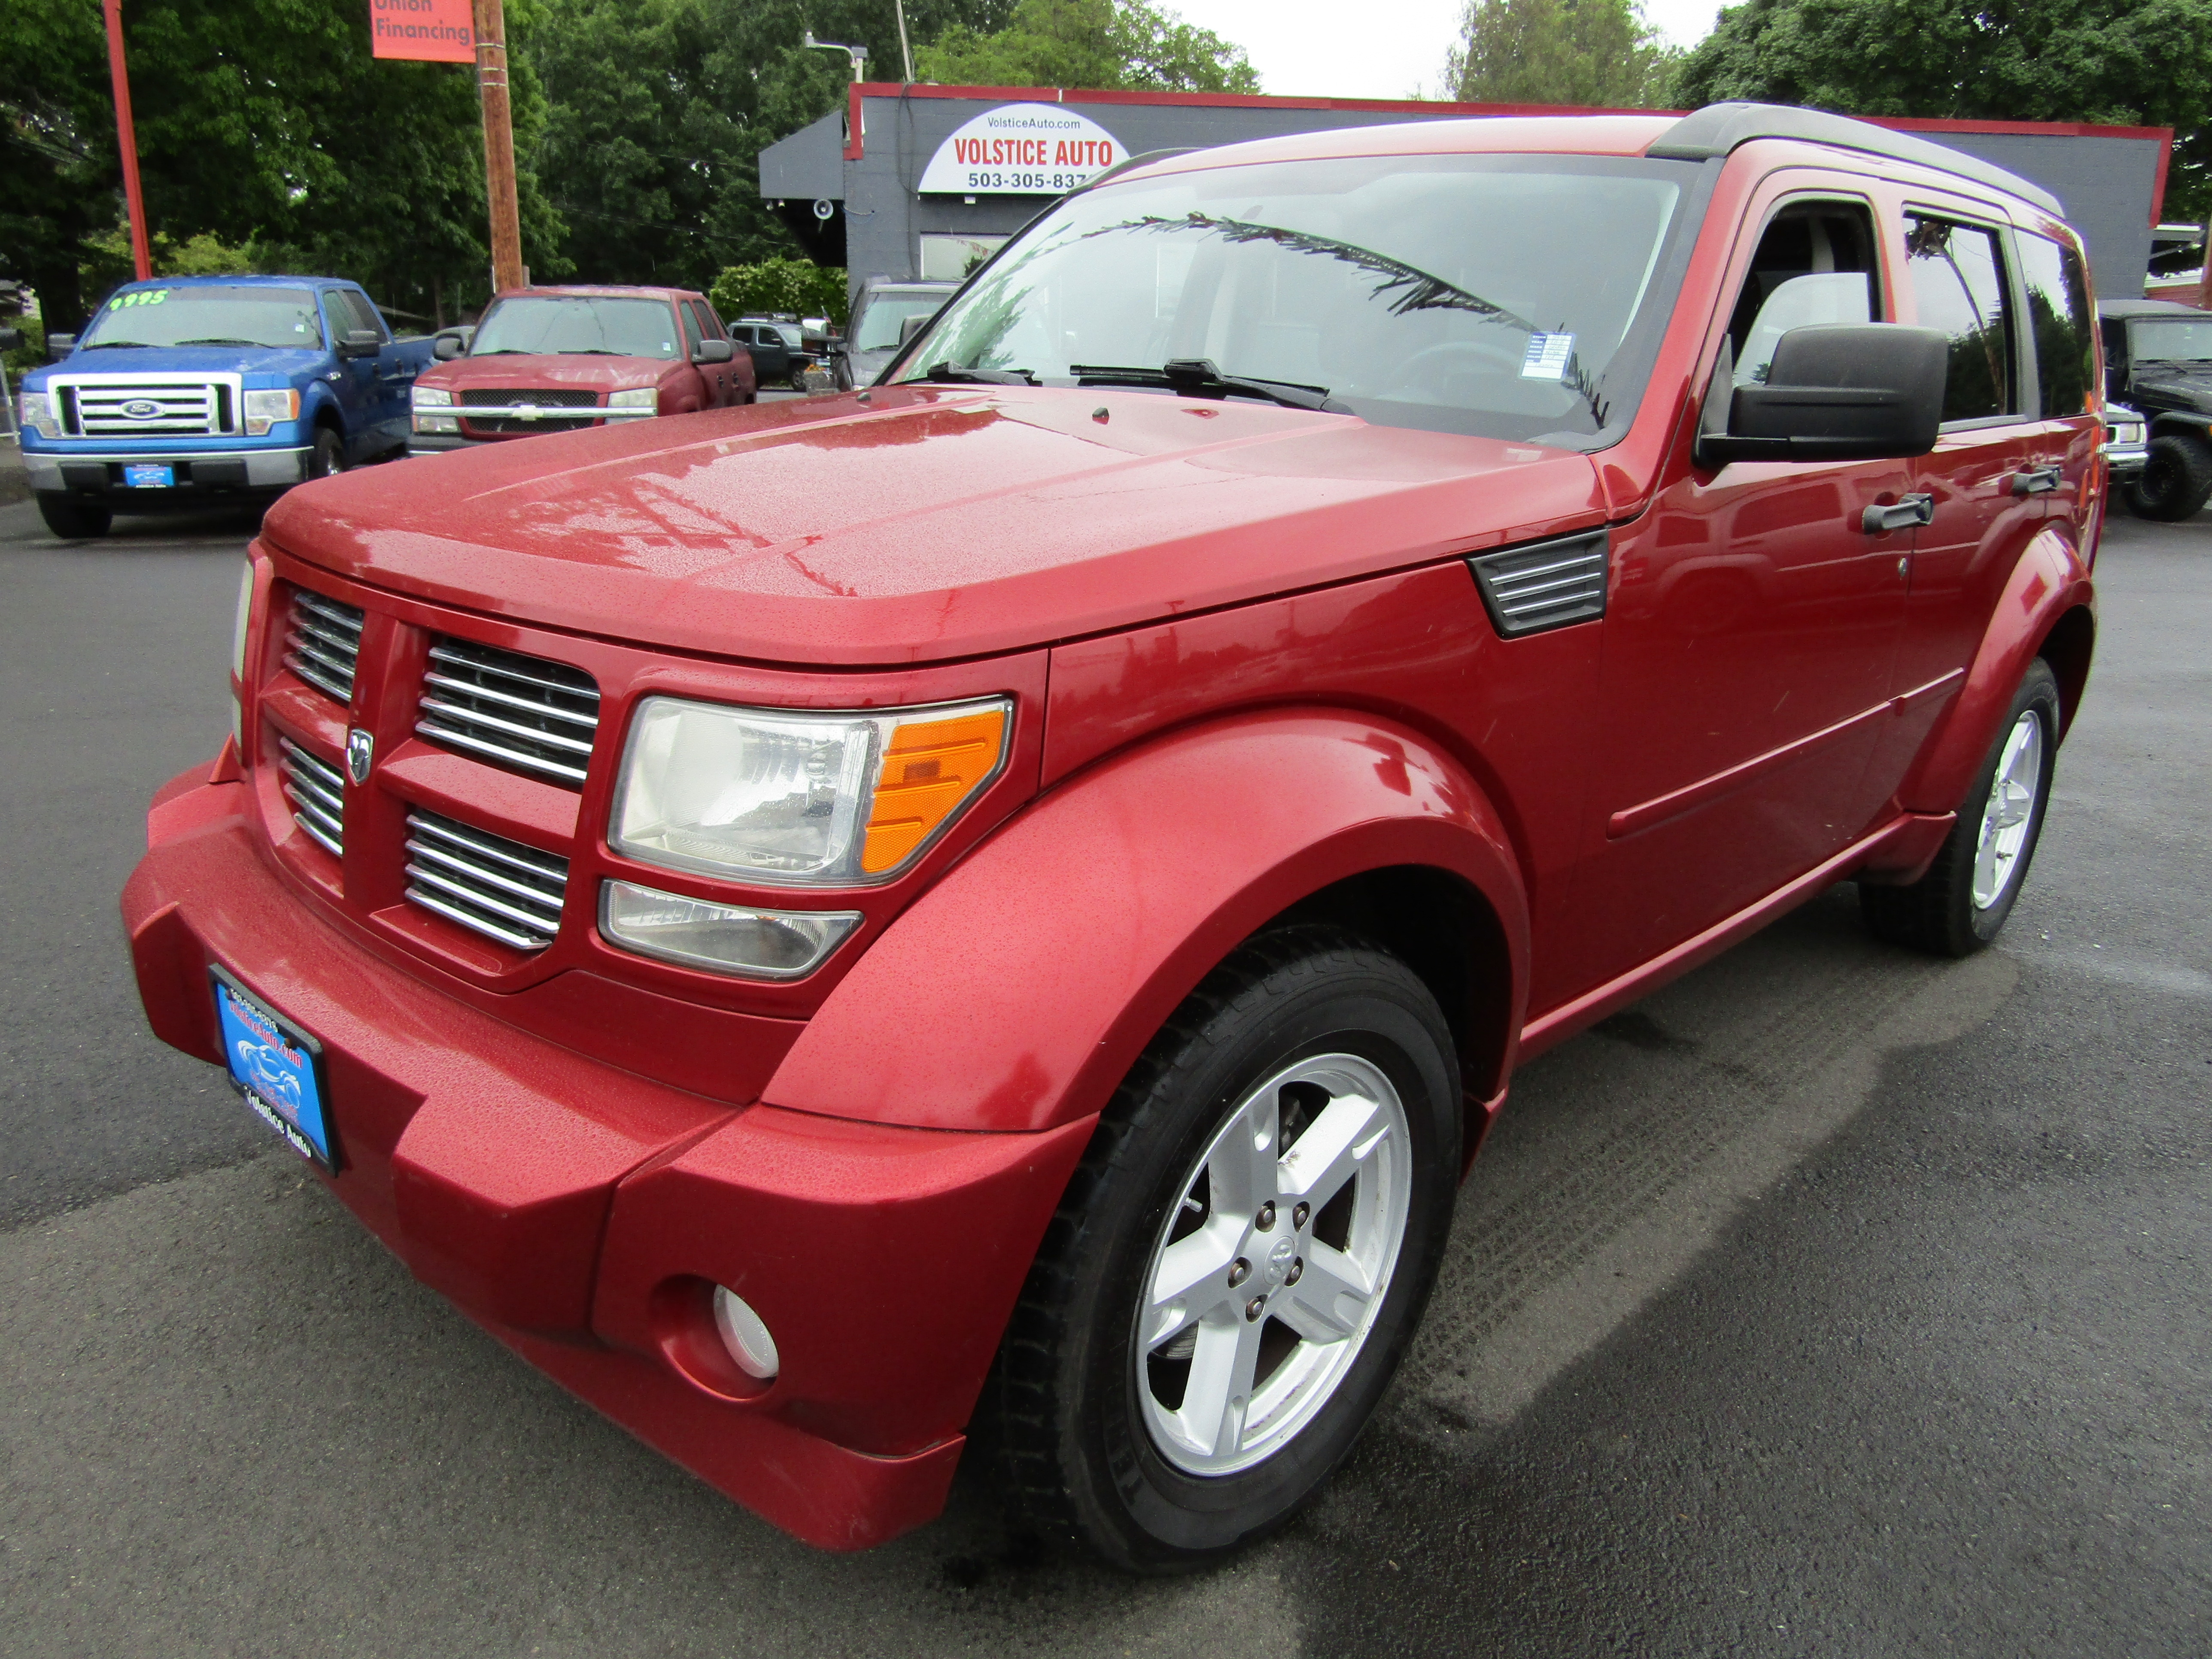 2010 Dodge Nitro 4wd 4dr Sxt Burgandy 117k Runs Awesome Volstice Auto Dealership In Milwaukie